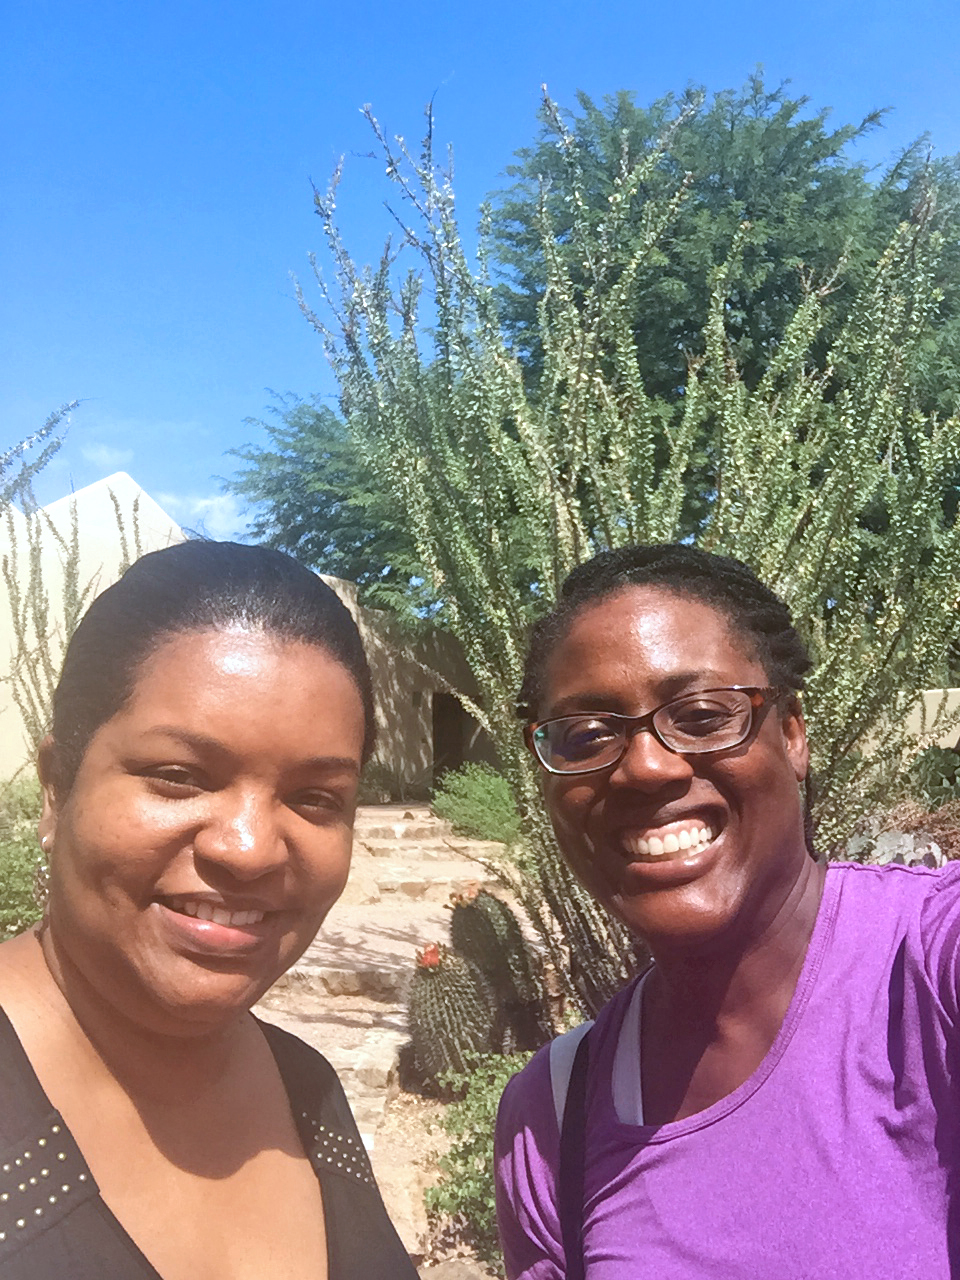 In Arizona with a friend